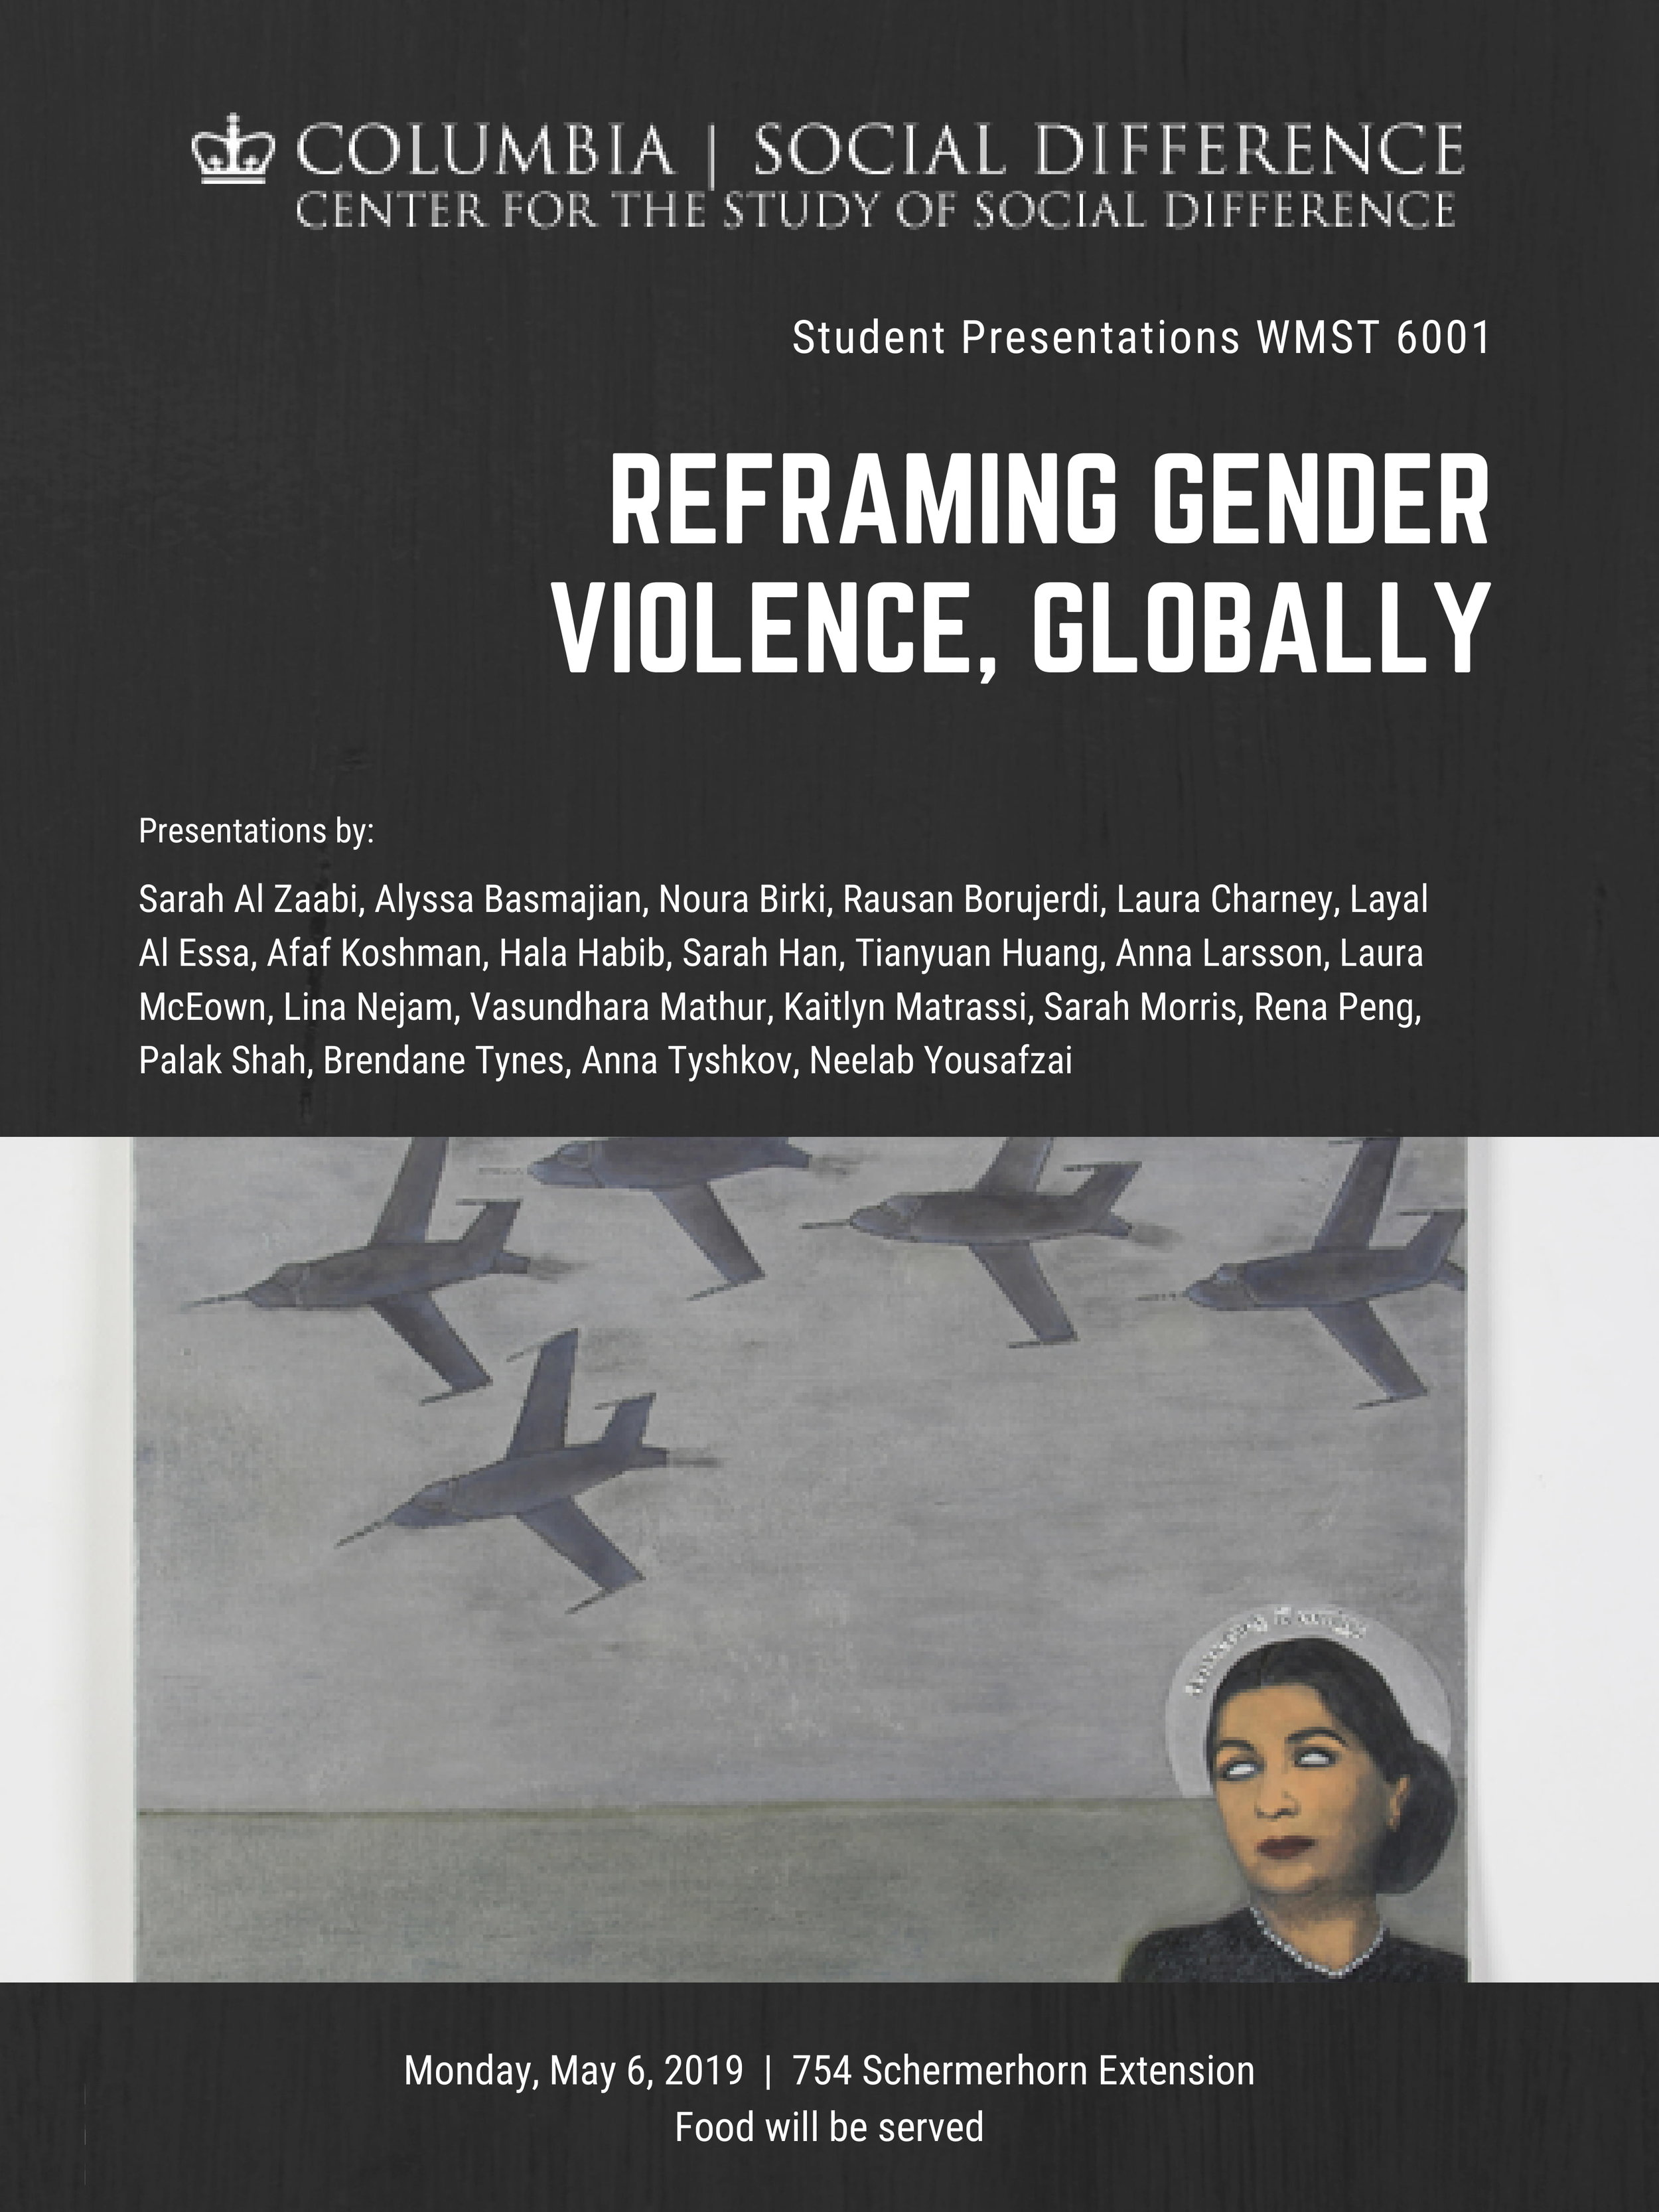 05062019 Reframing Gendered Violence Globally Presentations-1.jpg